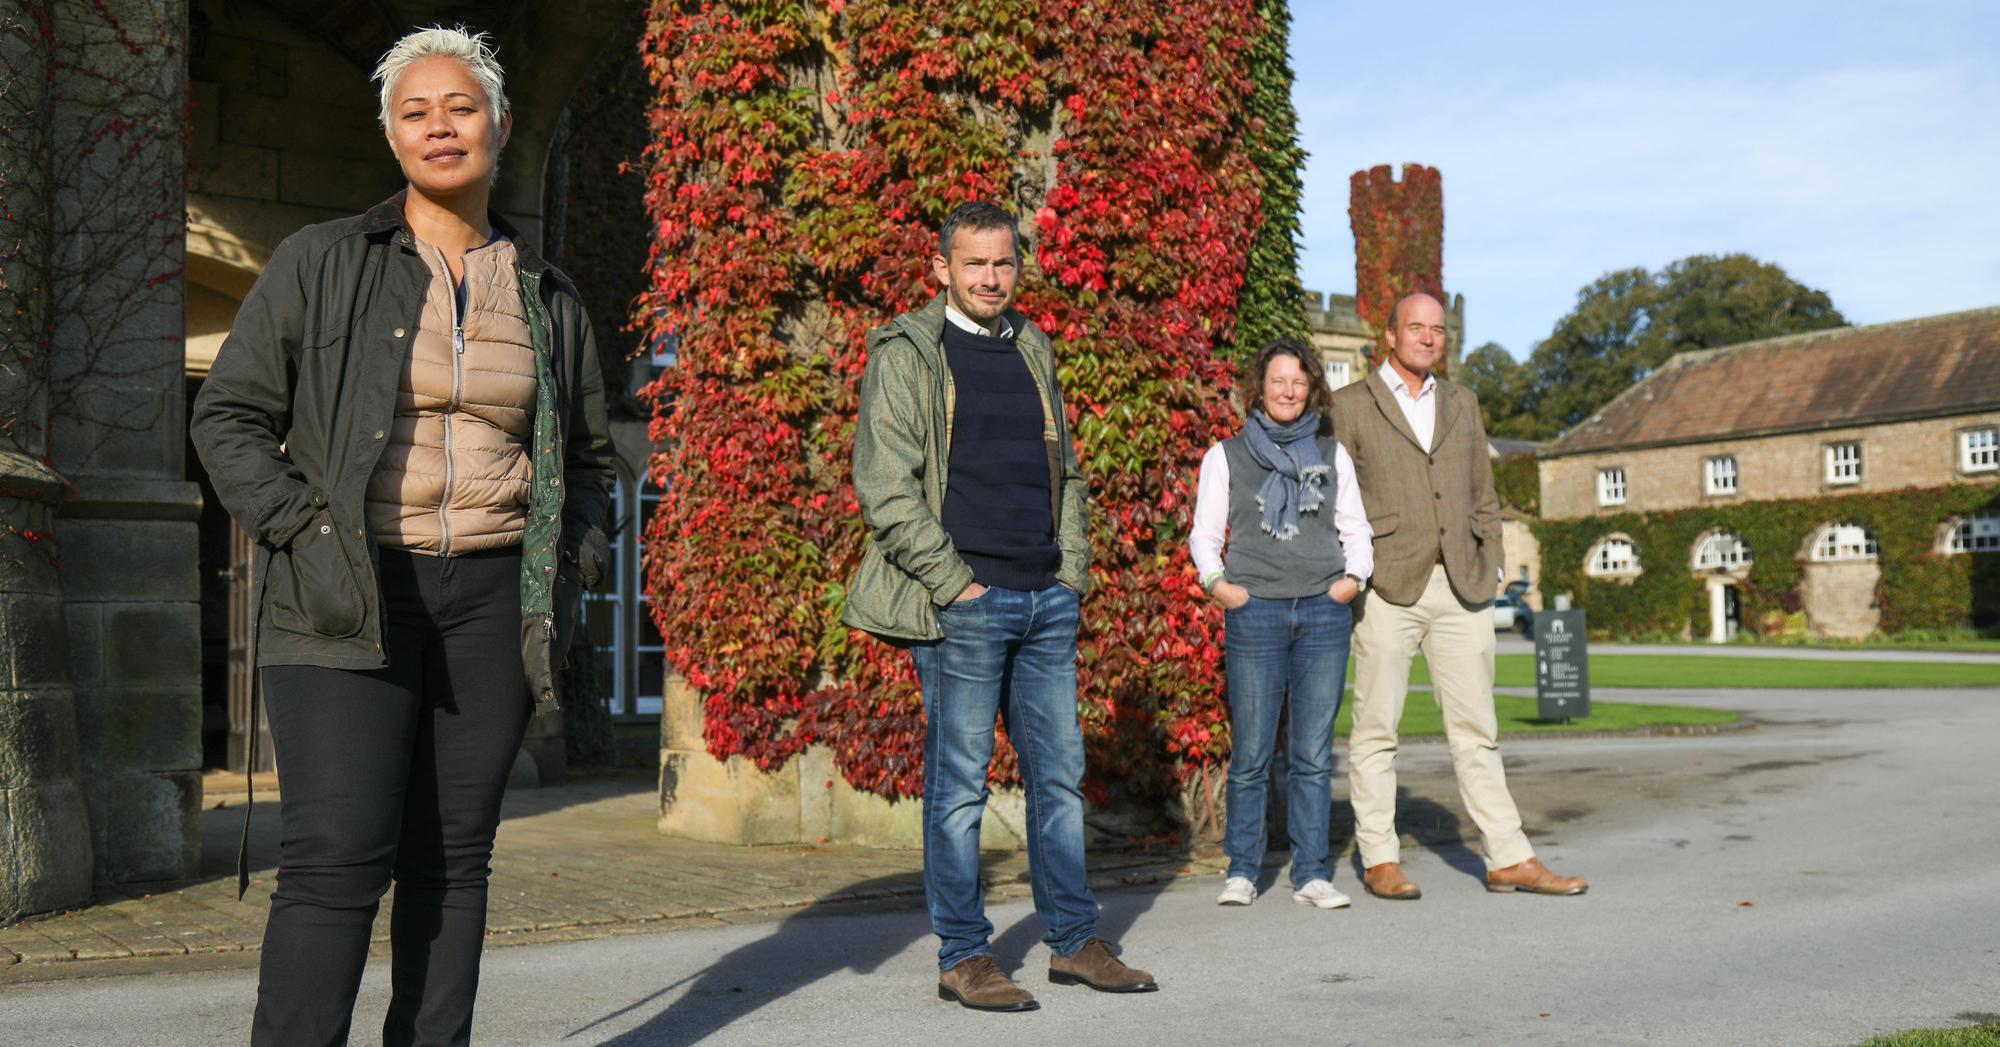 TV show to go behind the scenes at Swinton Park